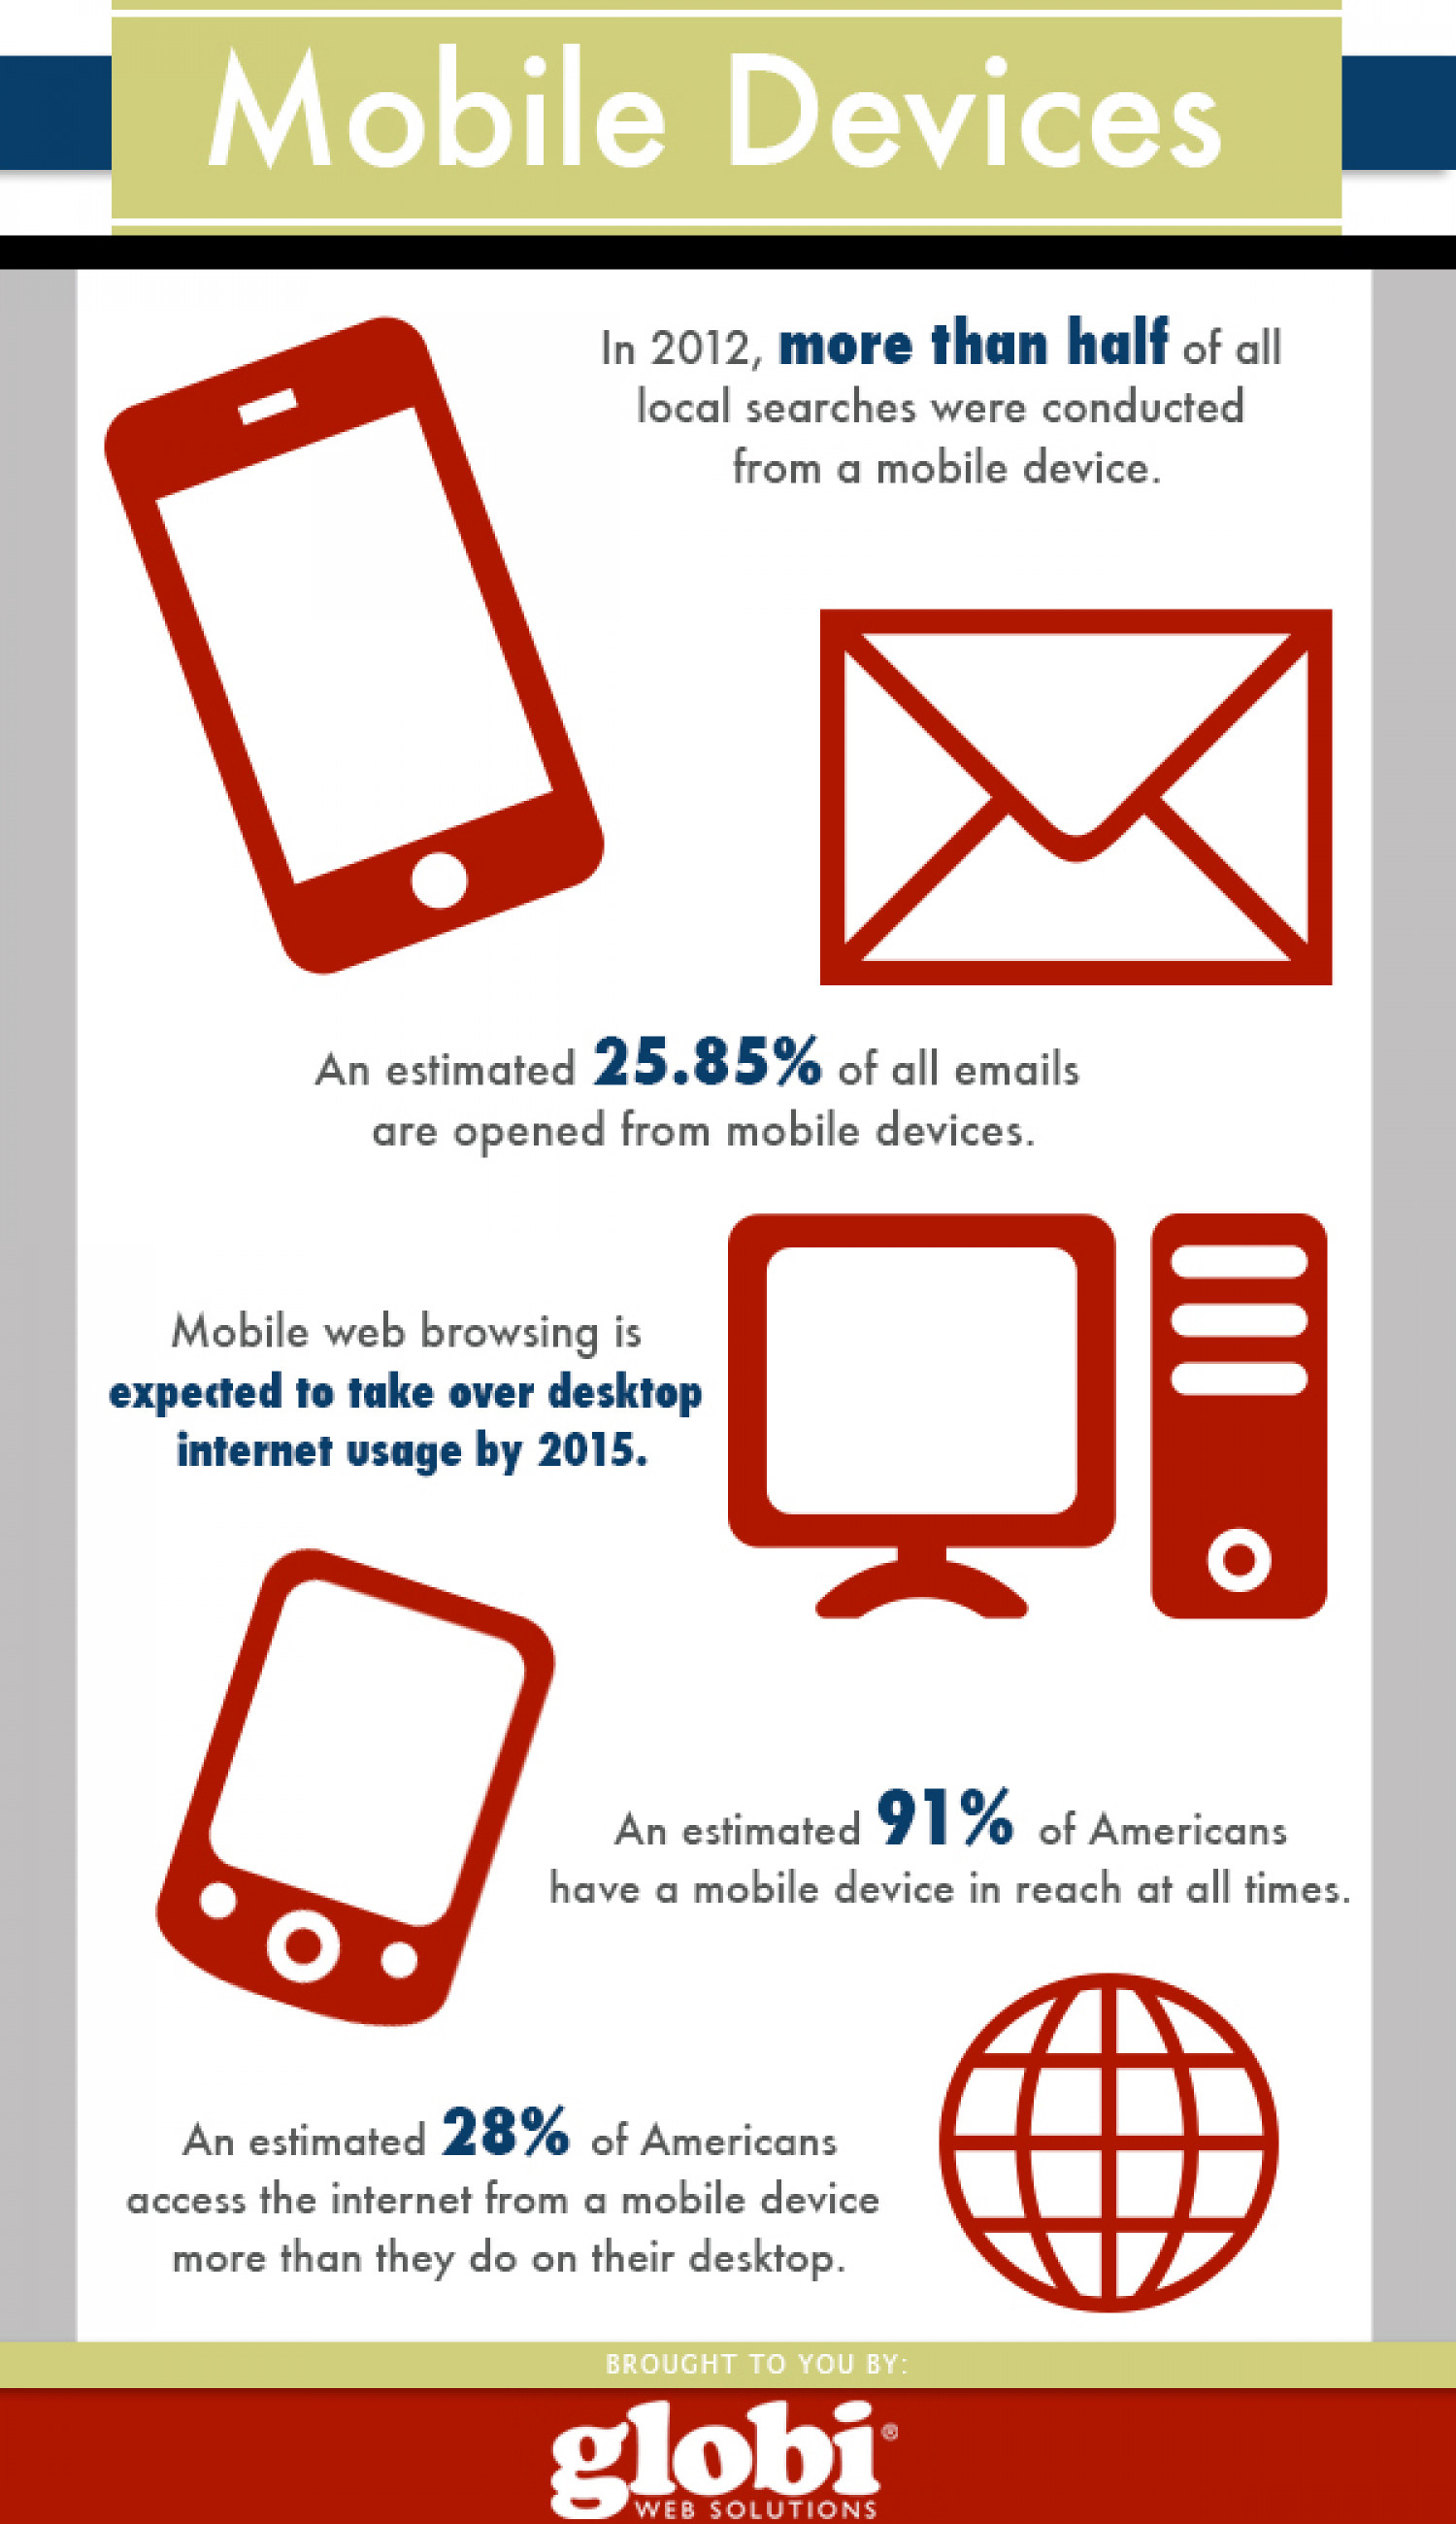 Mobile Devices Infographic